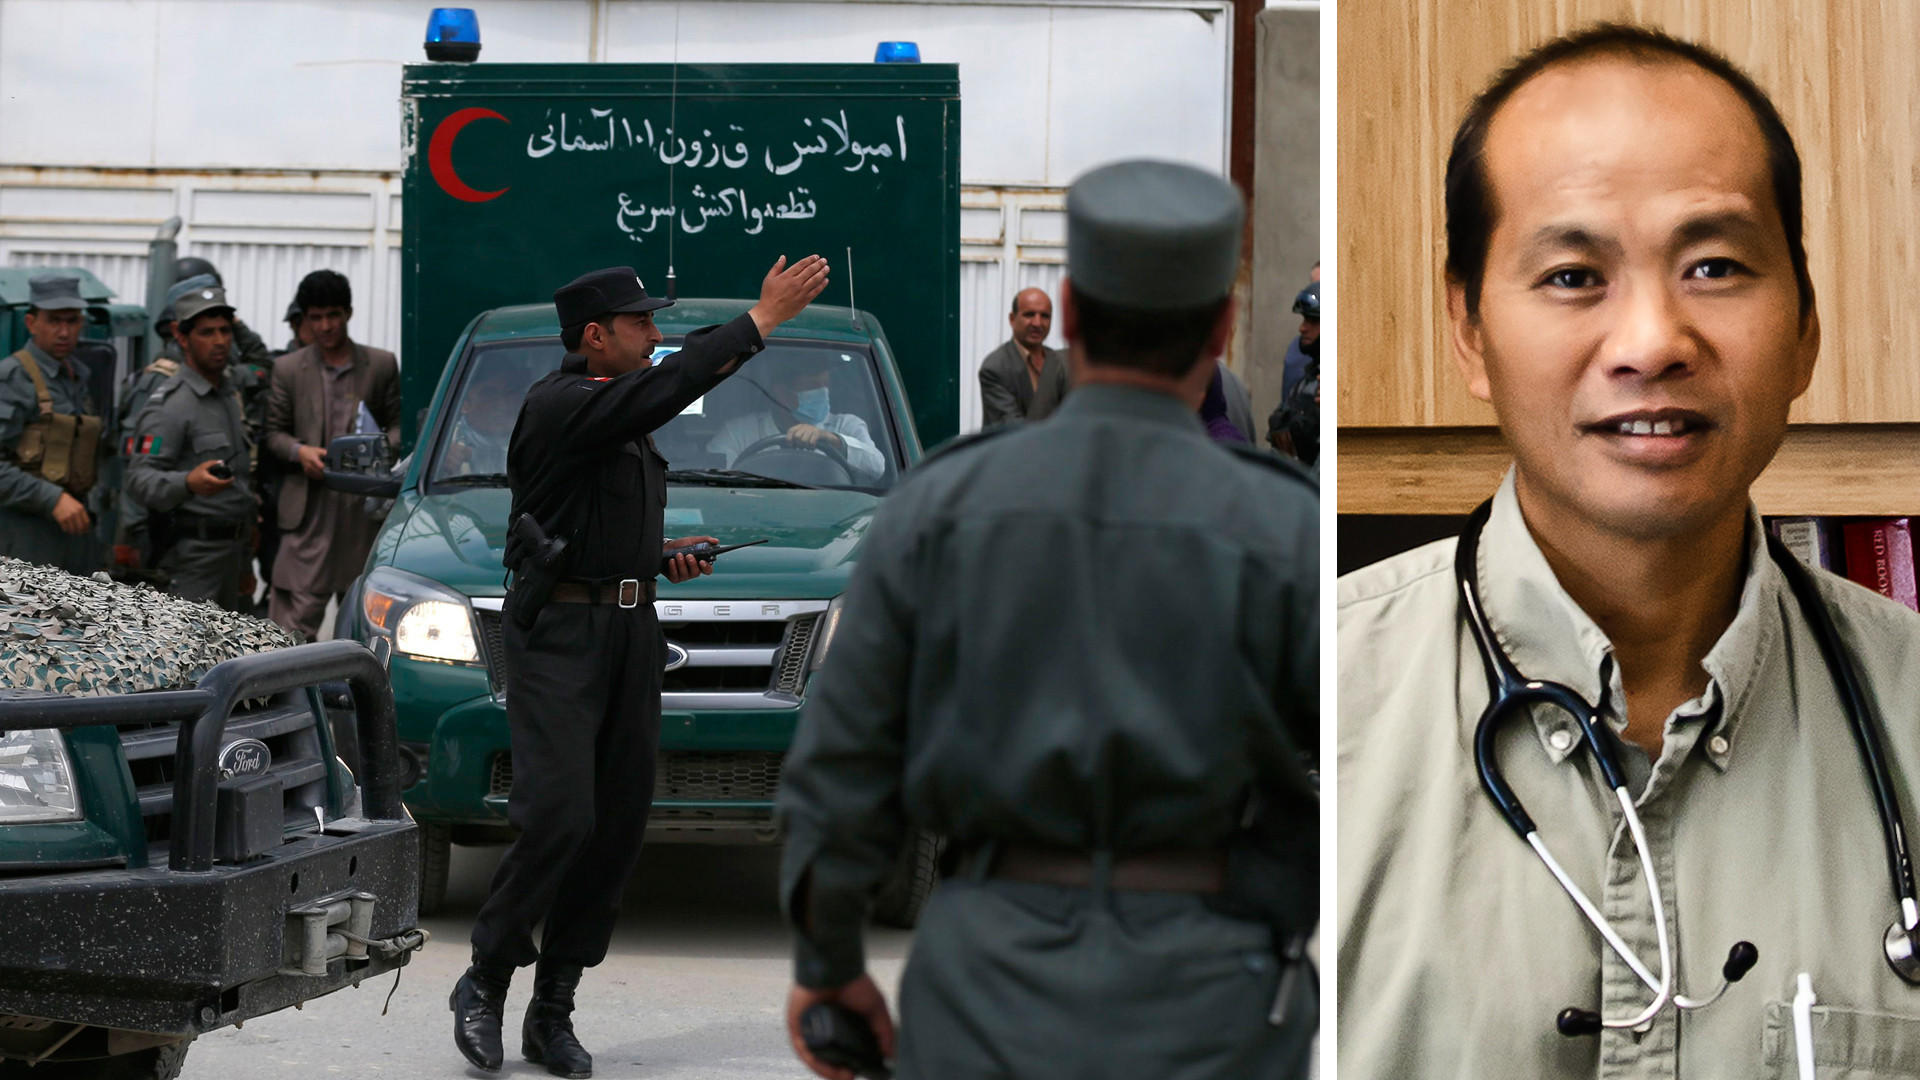 Left: An ambulance carrying victims of a shooting leaves through the gate of the Cure hospital in Kabul, Afghanistan today. Right: Chicago pediatrician Dr. Jerry Umanos, was one of three Americans killed.